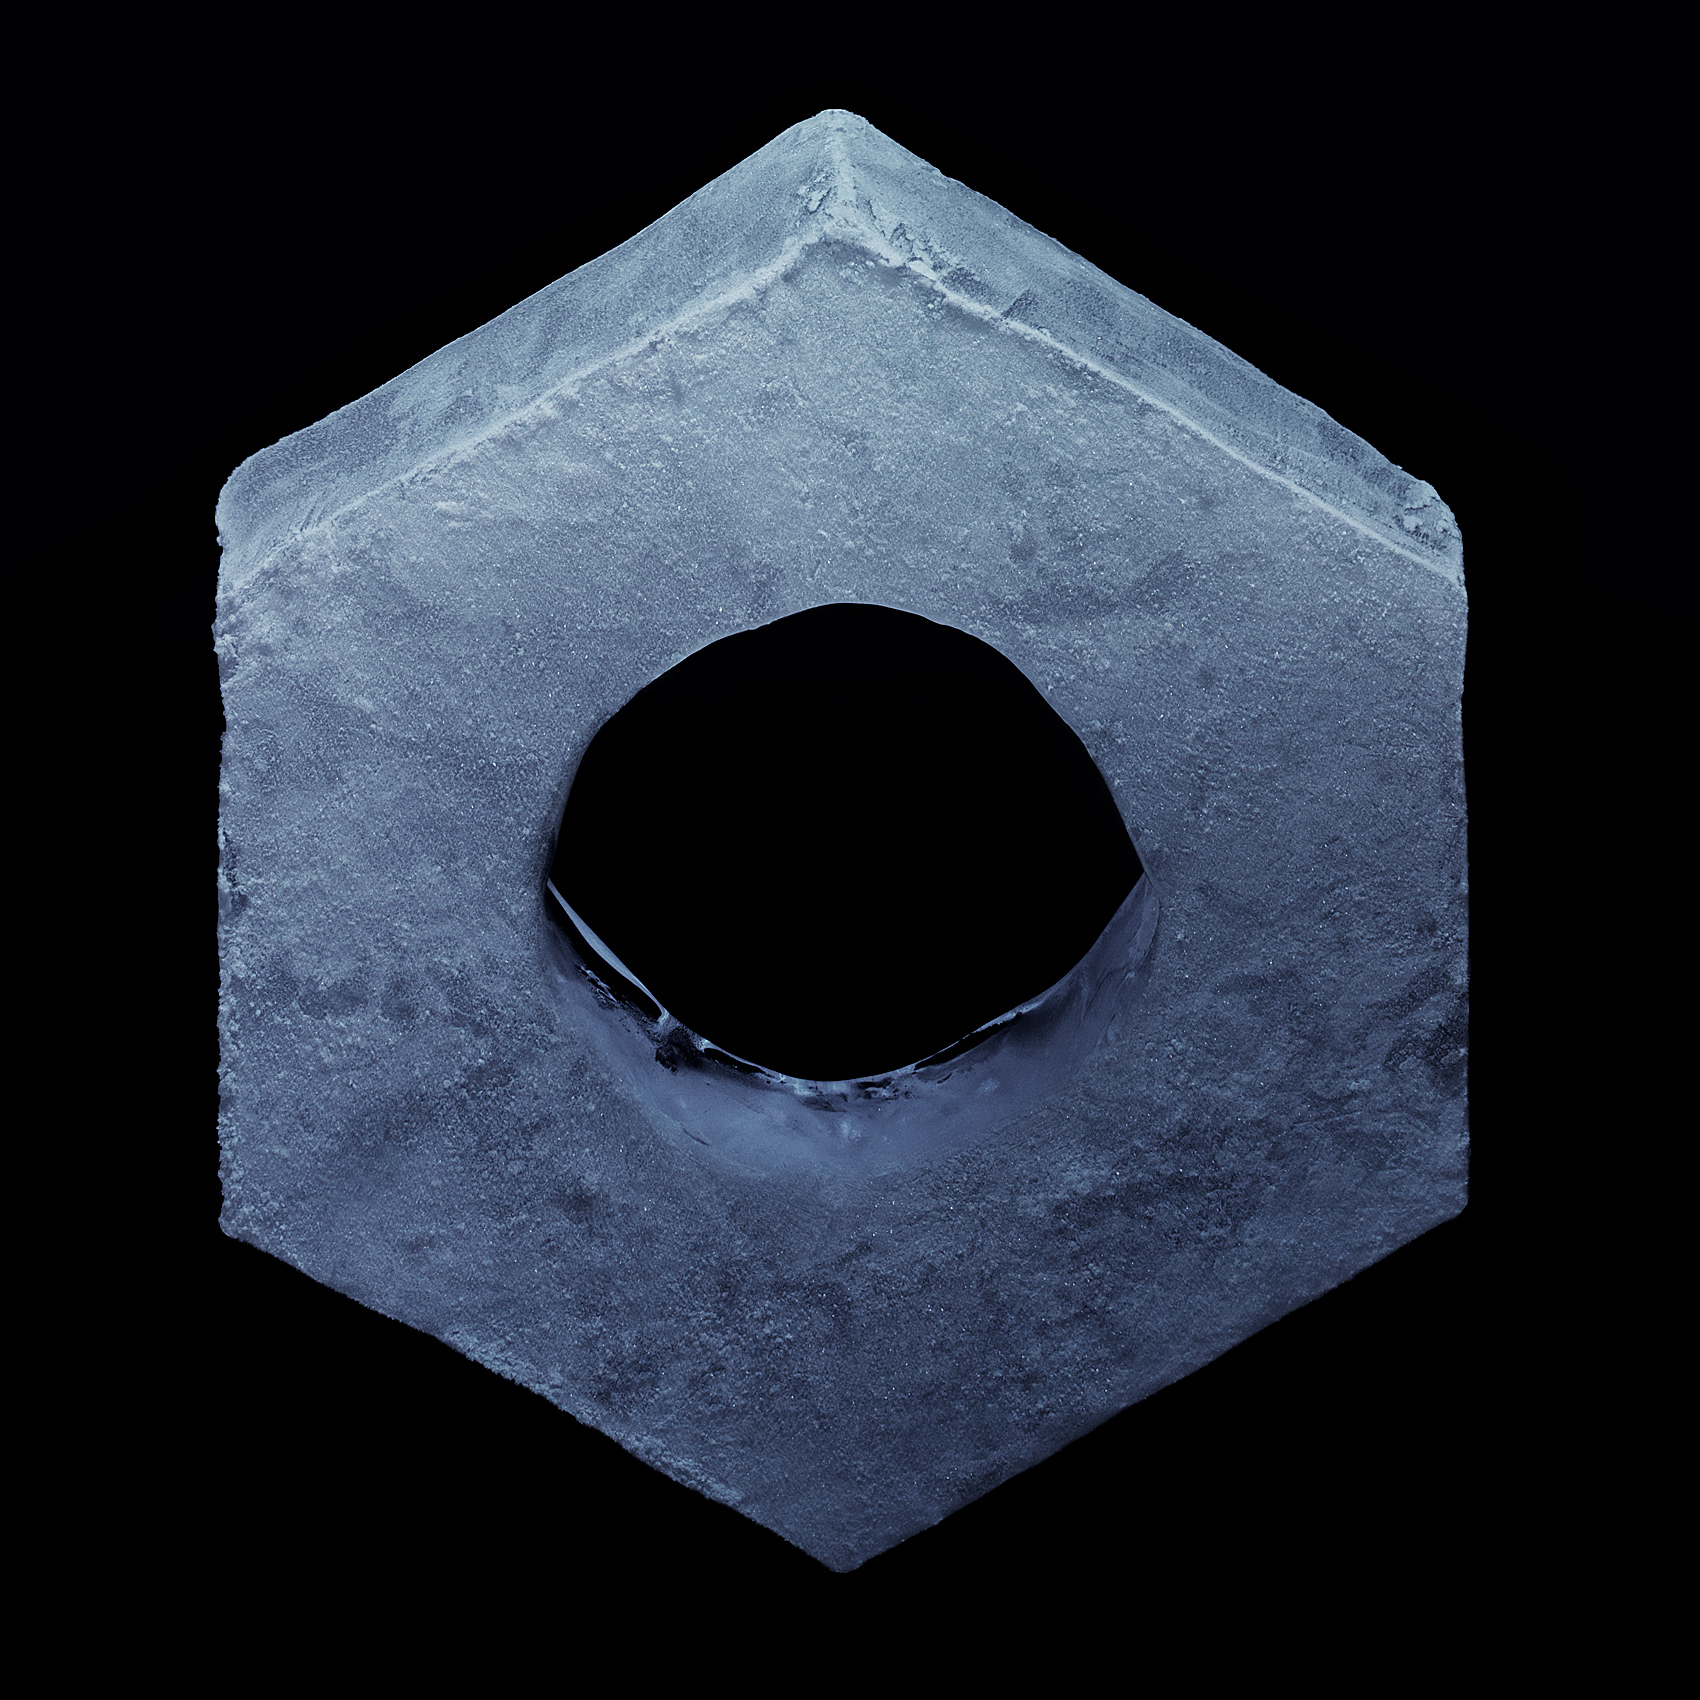 Nick_Rees-Abstract-Ice_Slabs-04-Hexagon